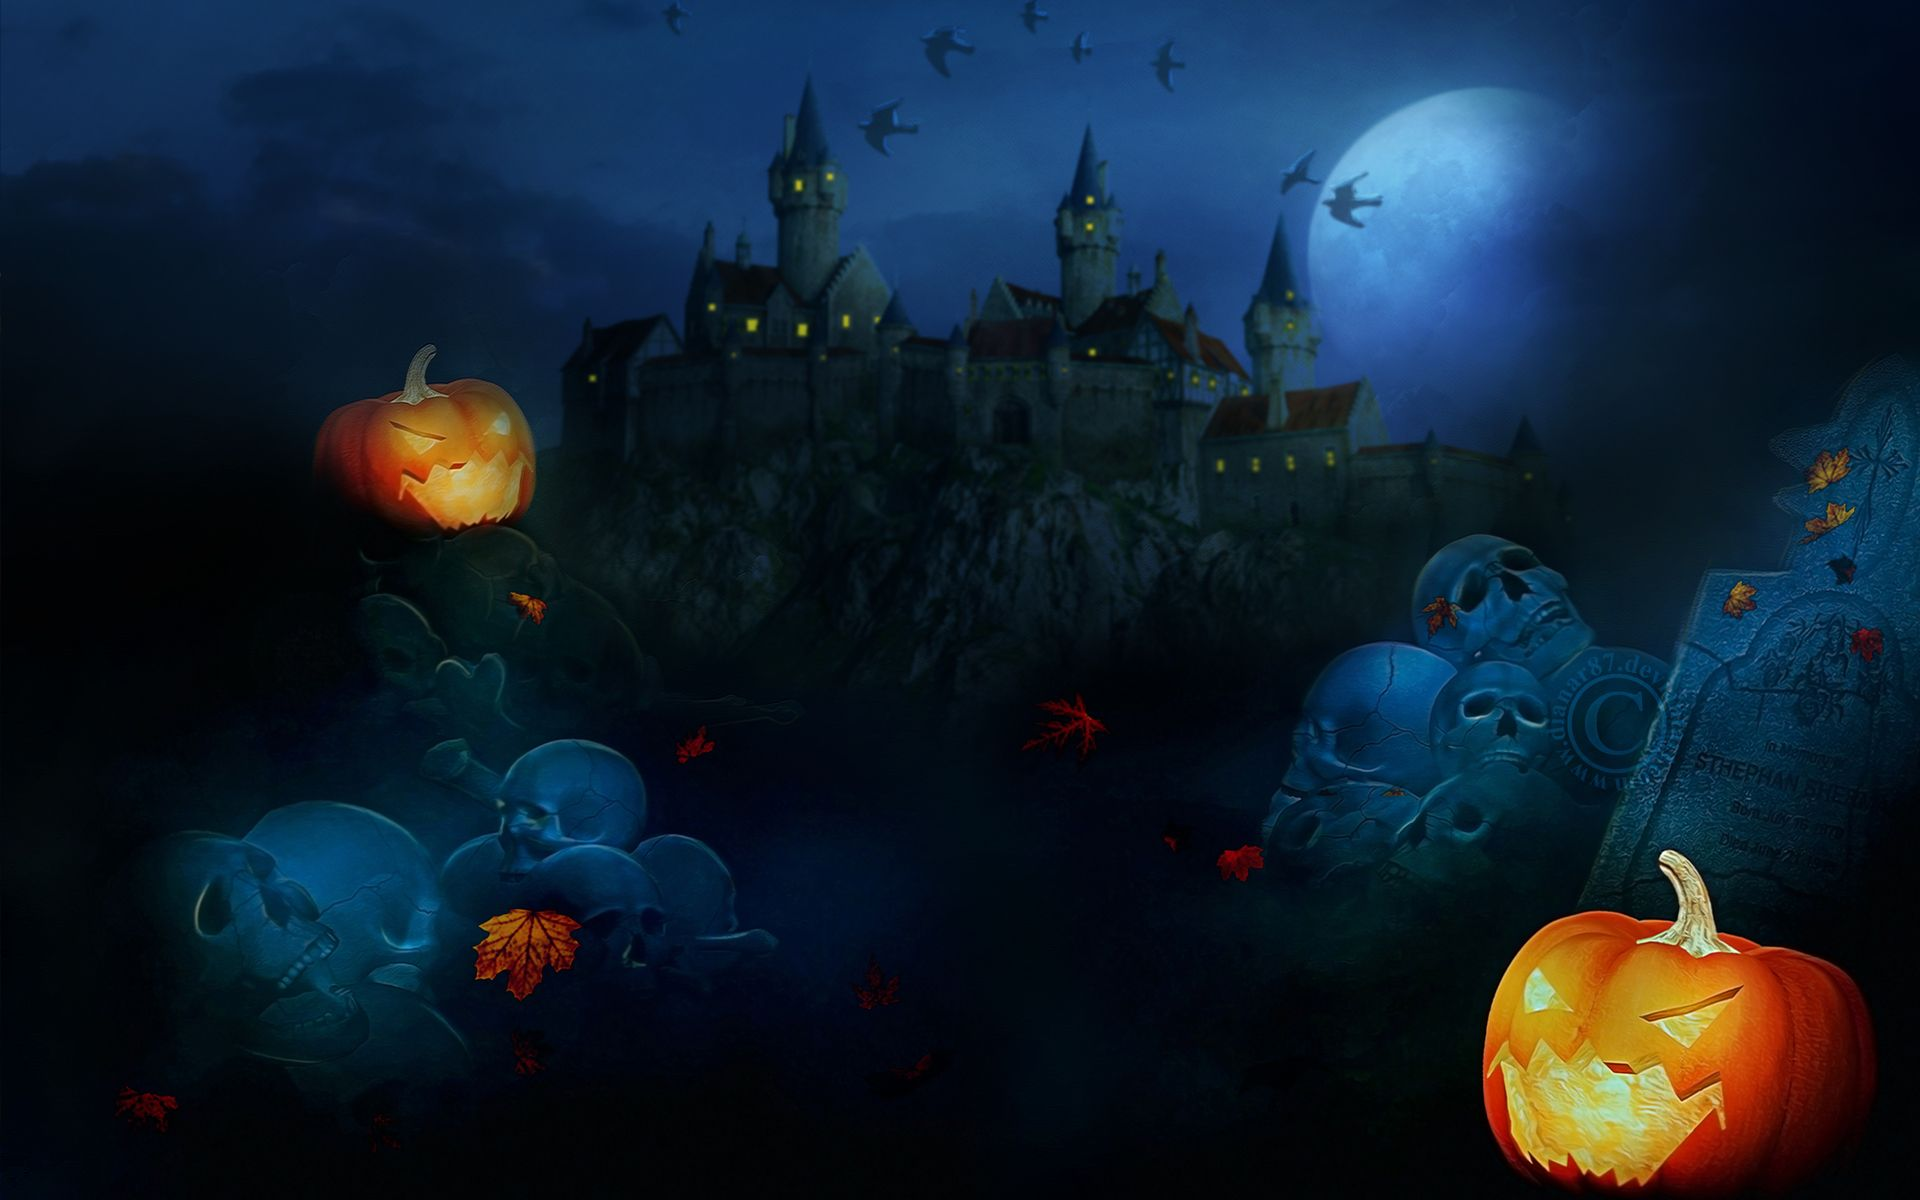 Cool Wallpaper Halloween Screensaver - 79311a937a2a8b229d1eb117500ce716  Trends_351354.jpg